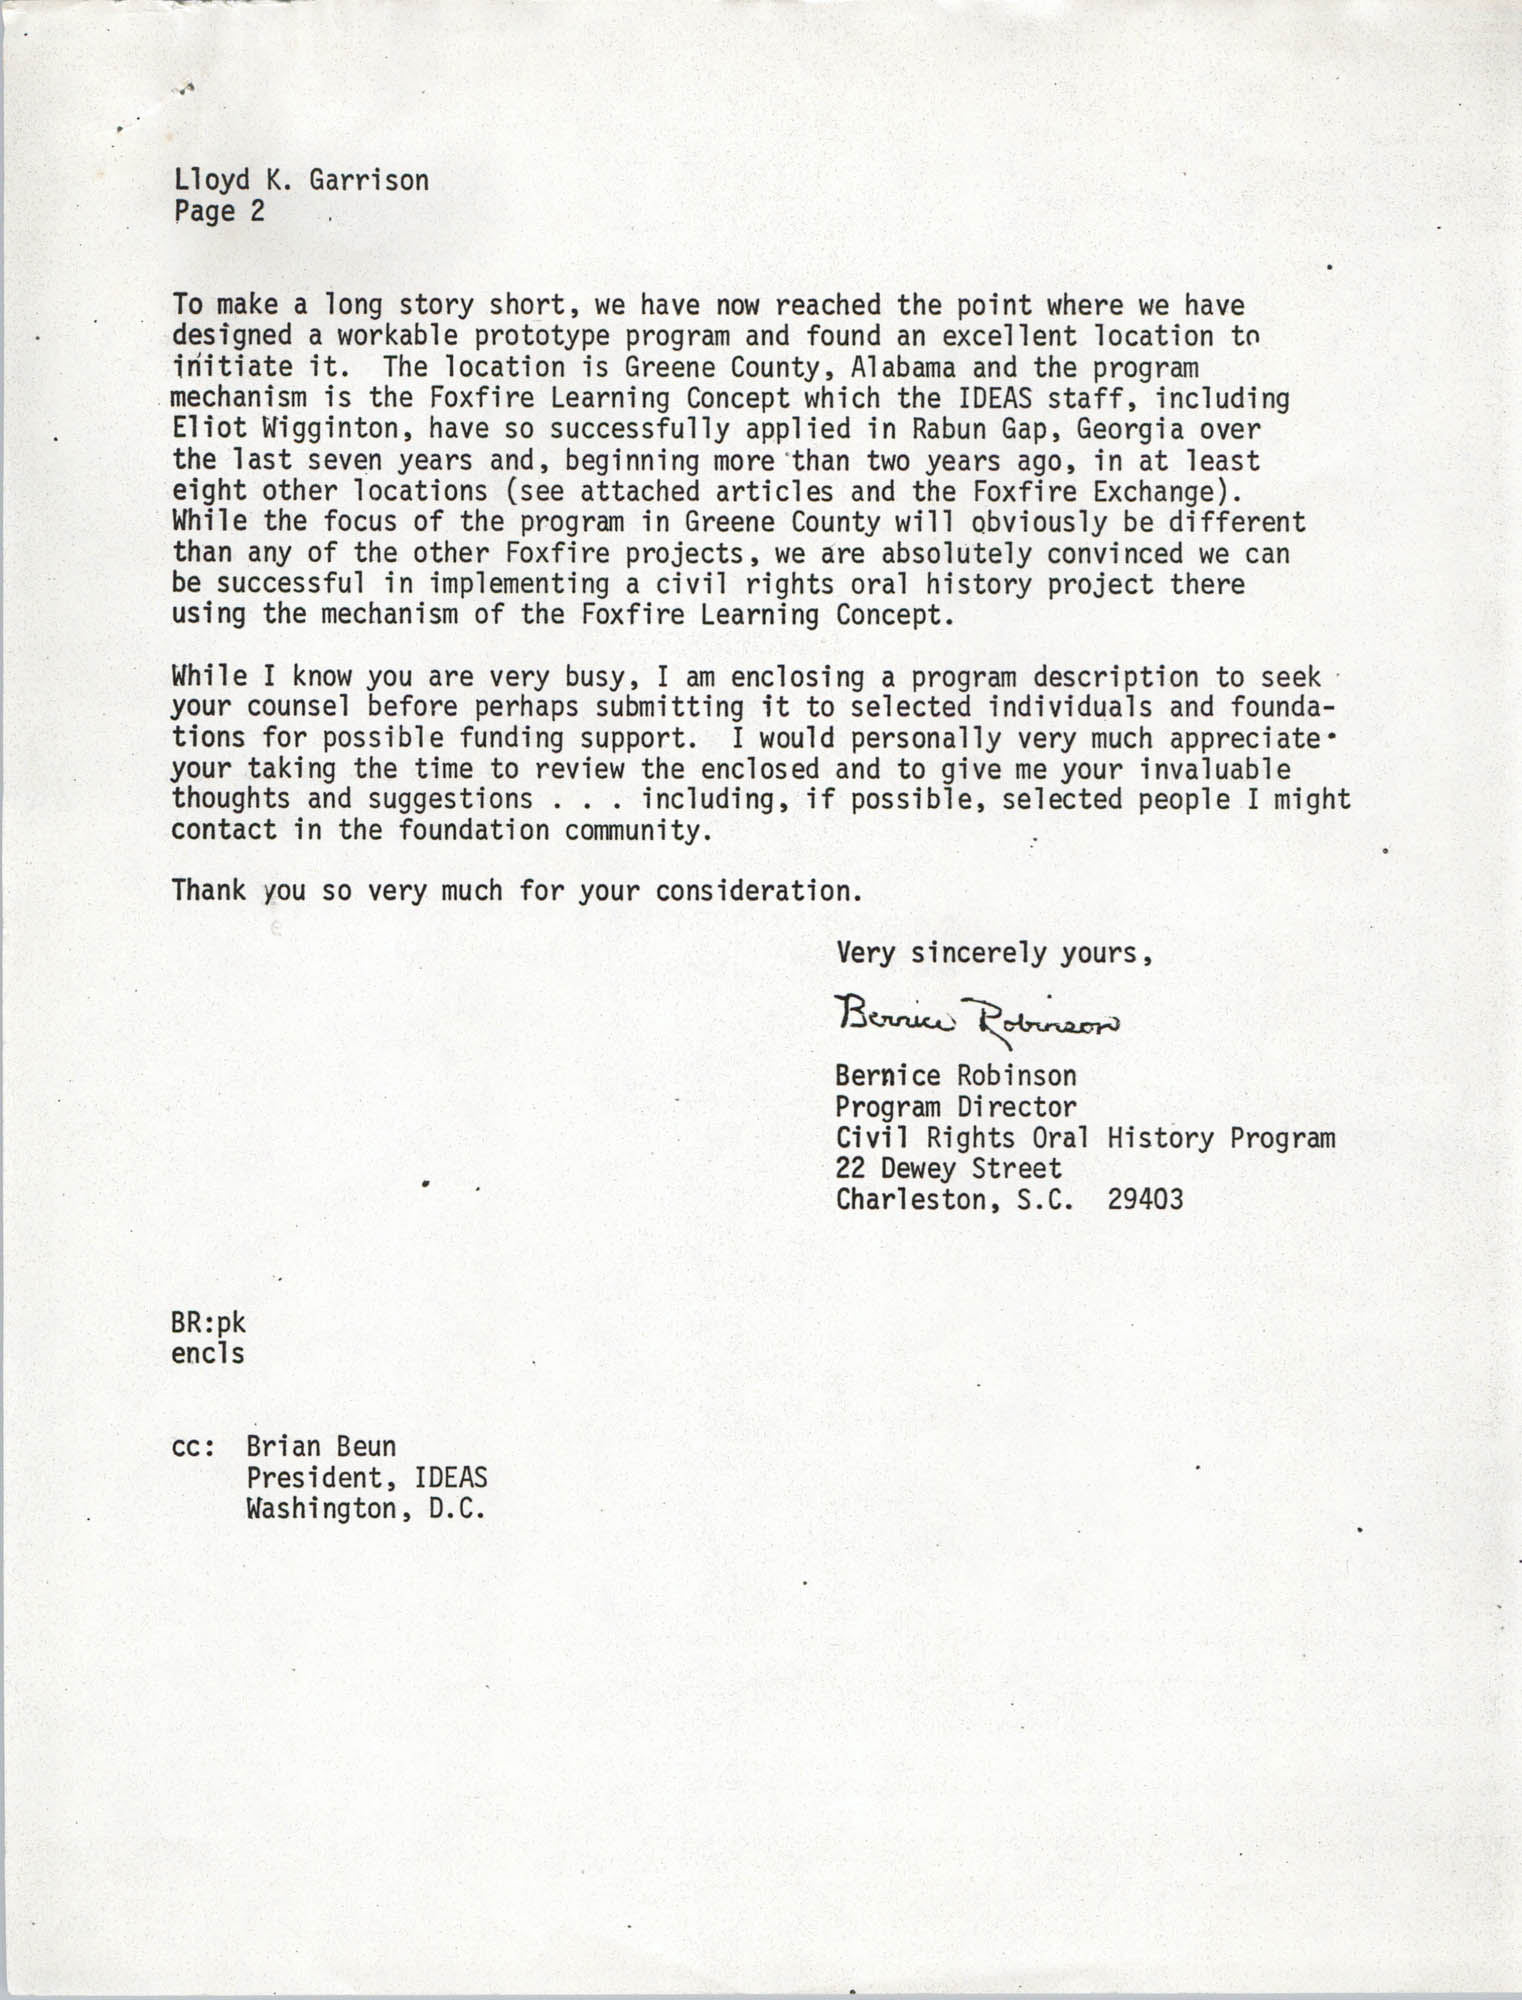 Letter from Bernice Robinson to Lloyd K. Garrison, May 4, 1973, Page 2